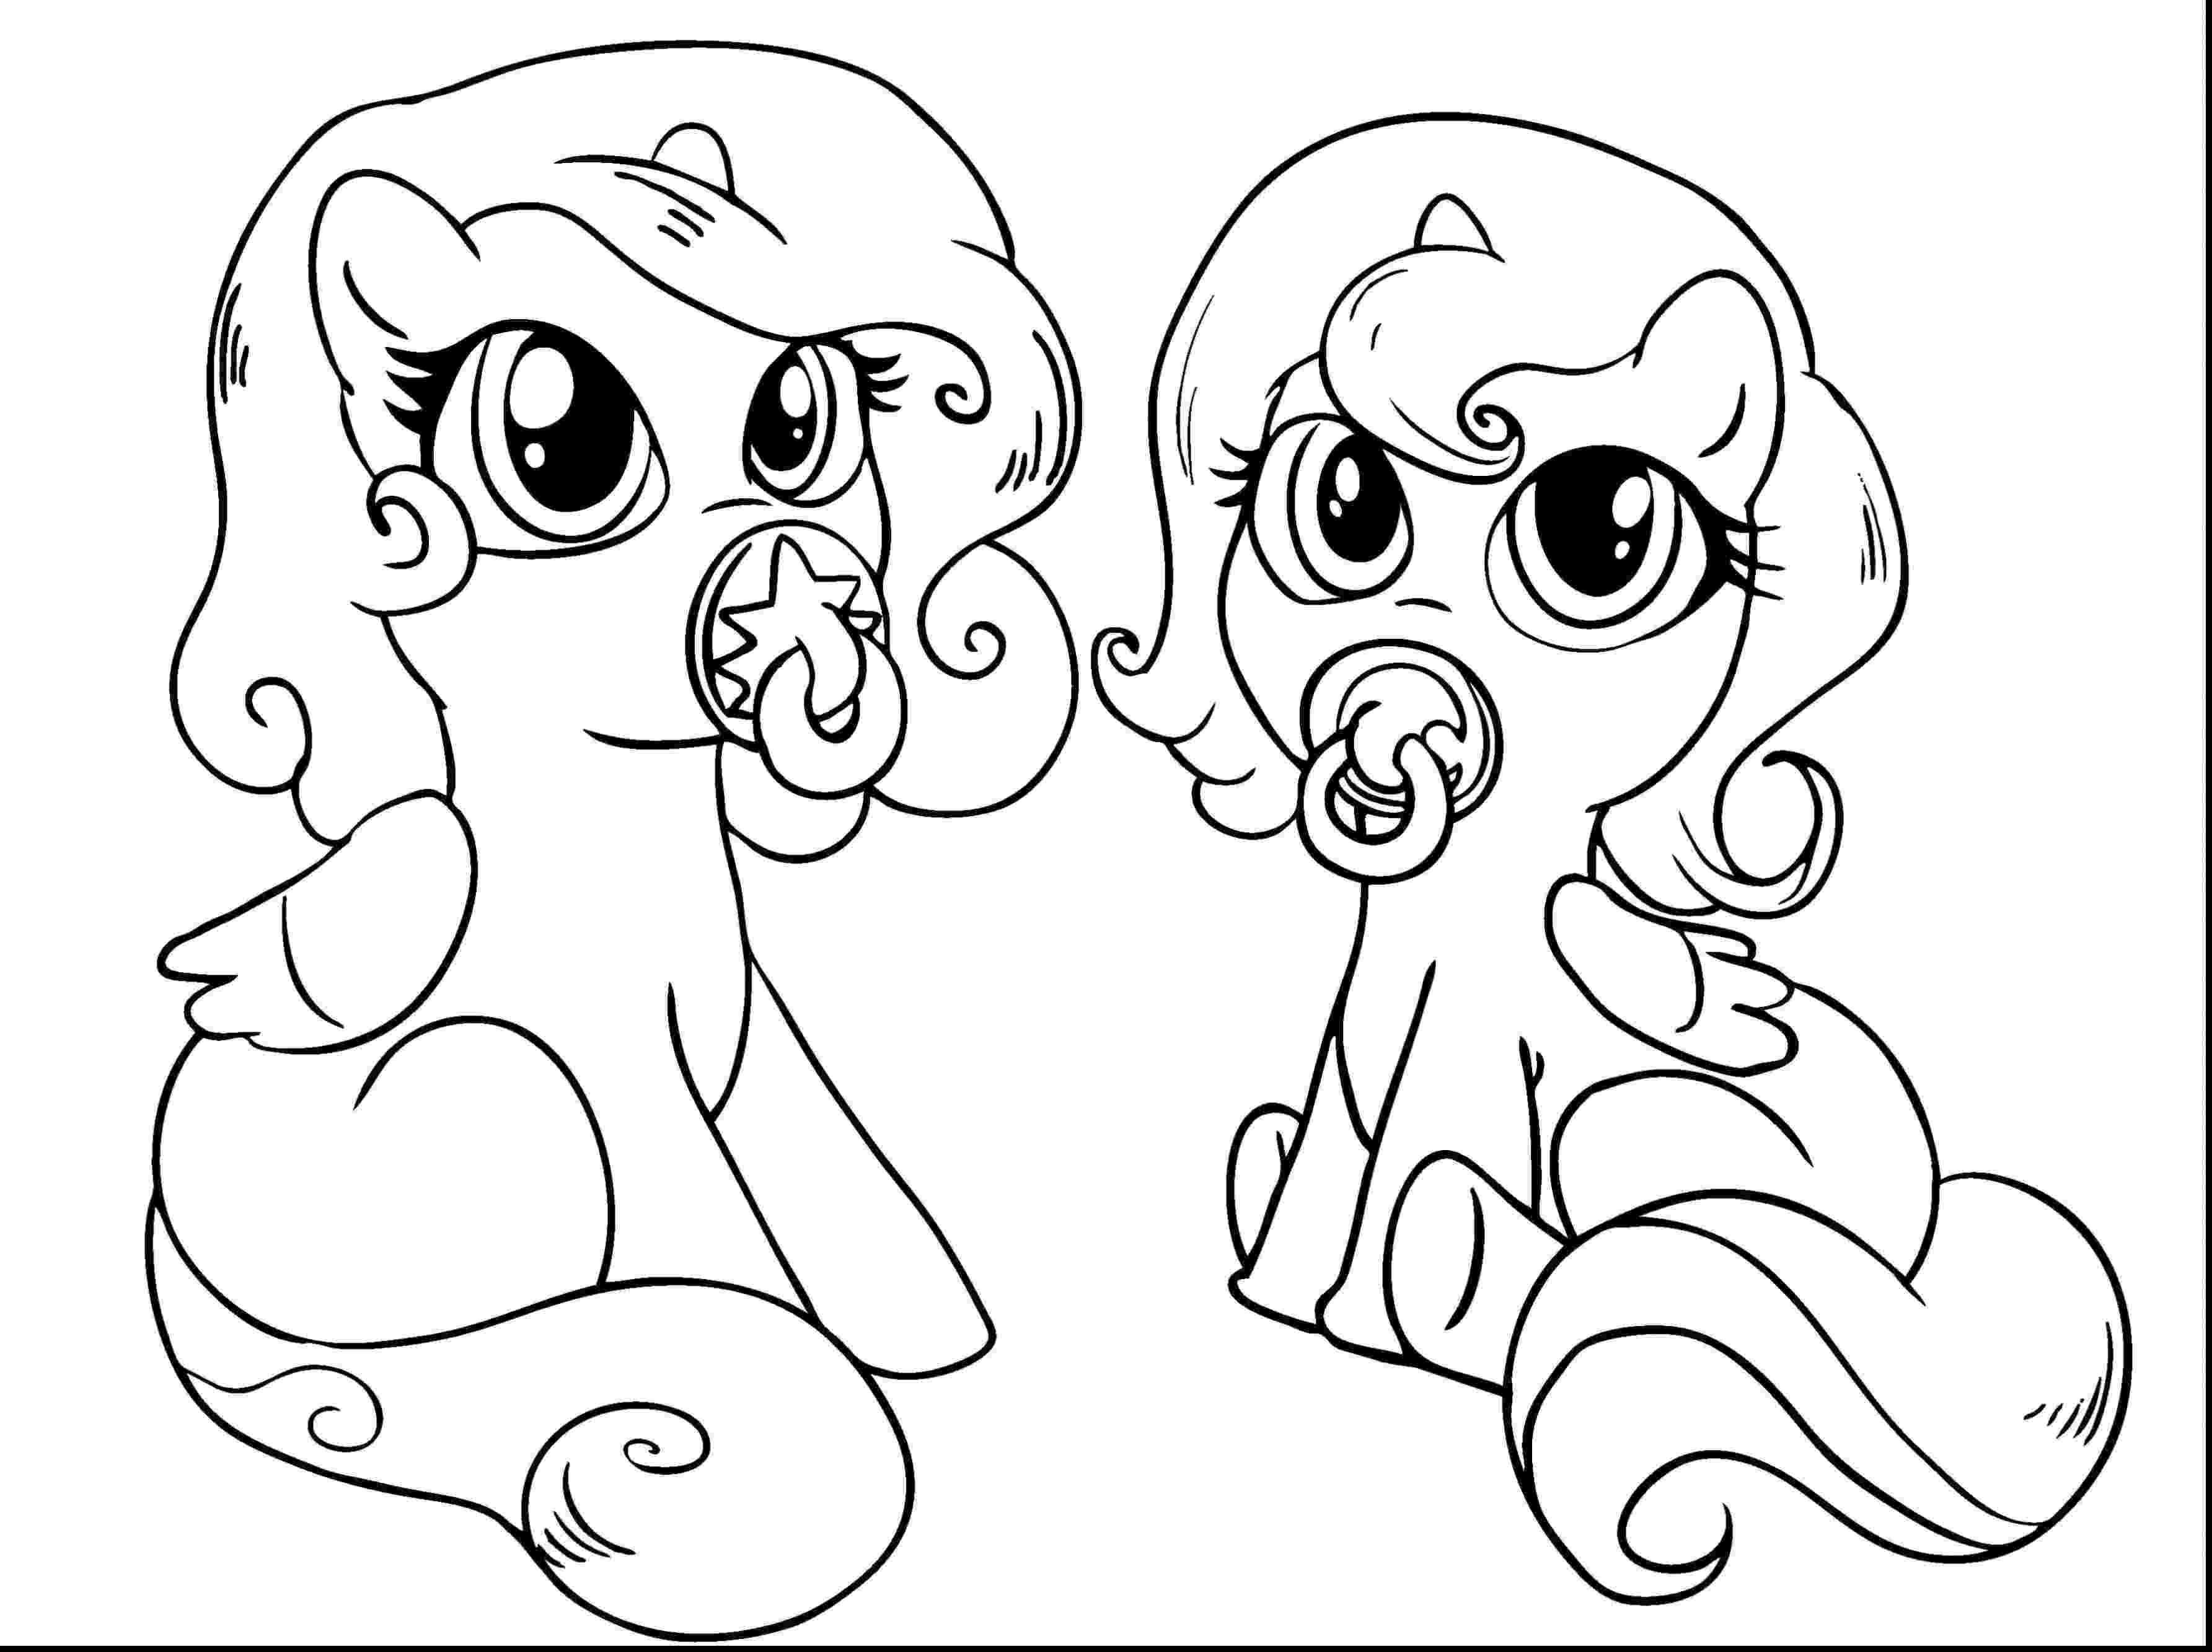 pretty pony coloring pages image result for really pretty horse colouring pages pony pretty coloring pages